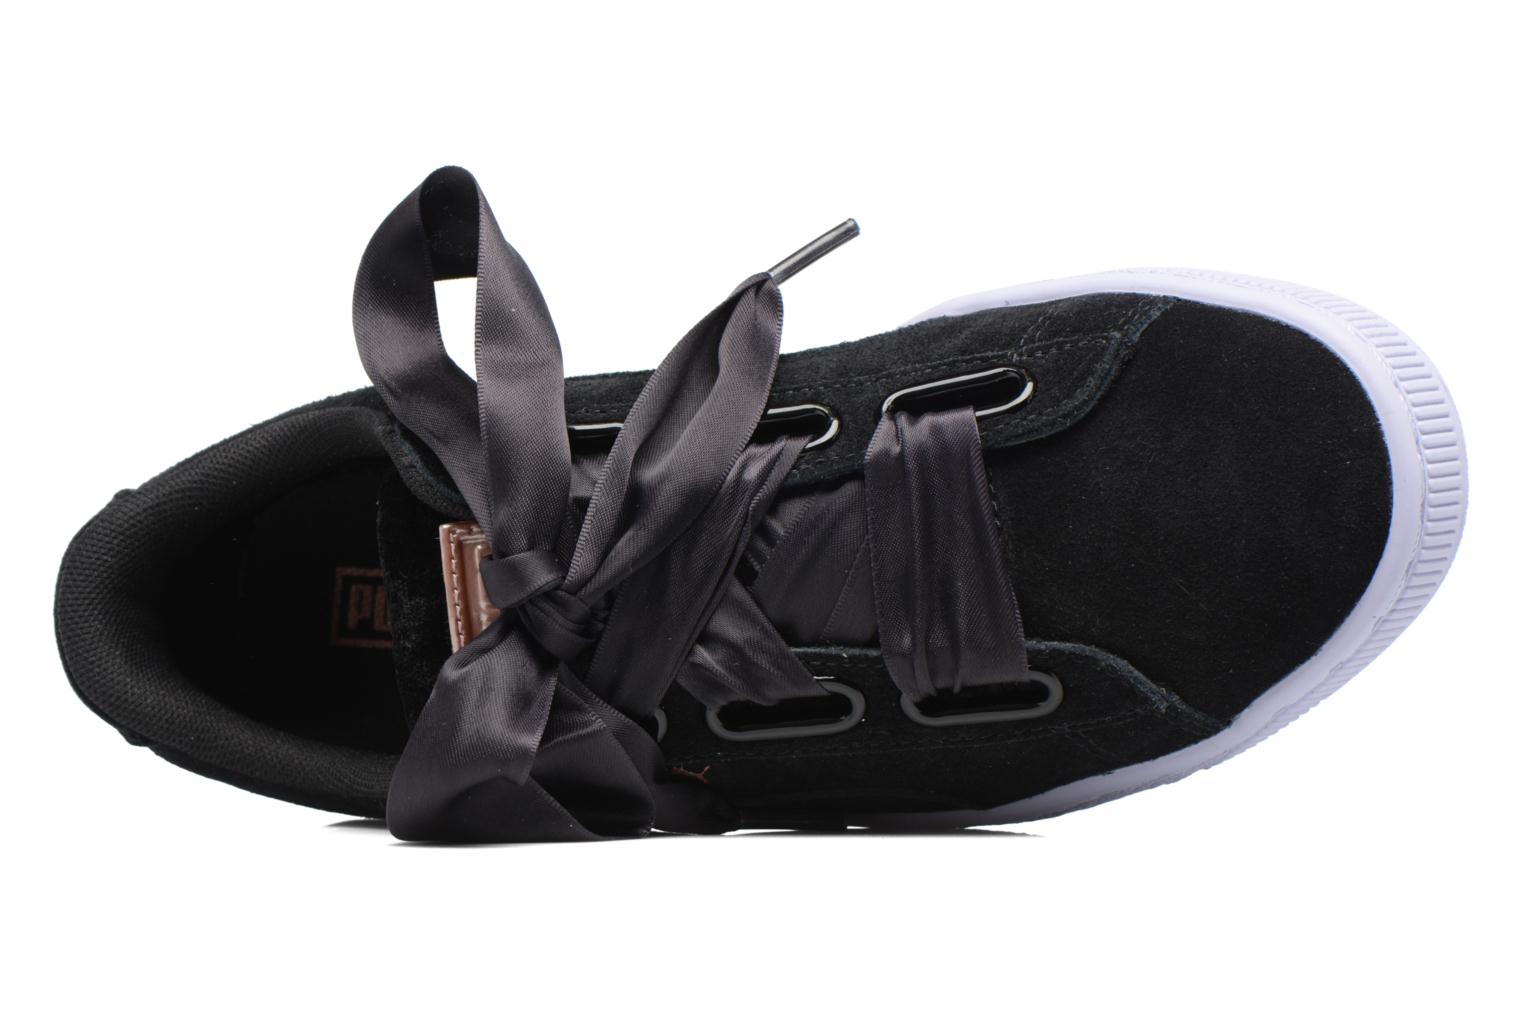 Wns Suede heart Vr Black